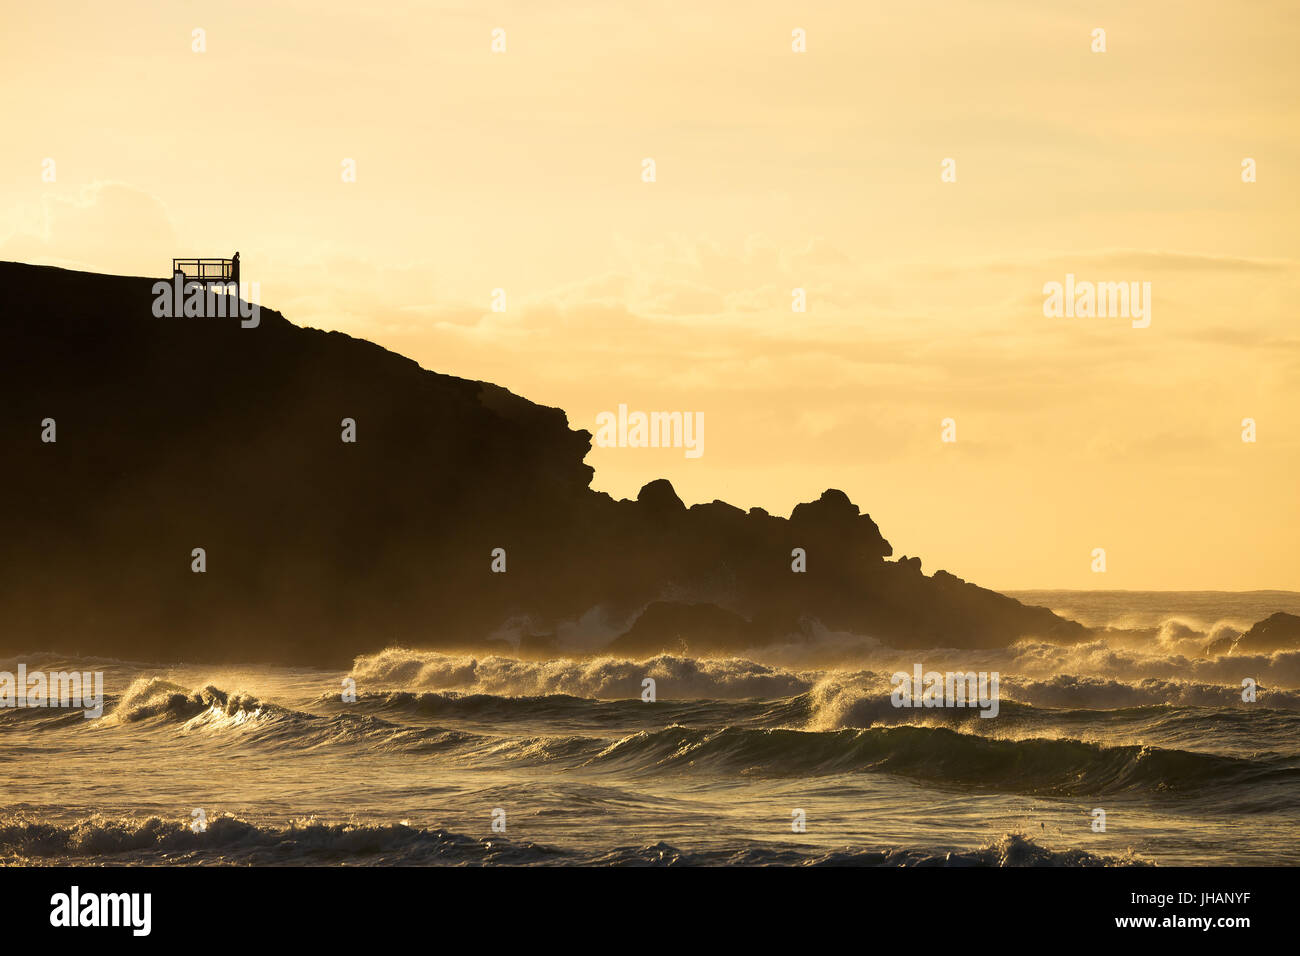 A silhouetted person watches the waves breaking on the beach in golden morning light from a viewing platform. Stock Photo